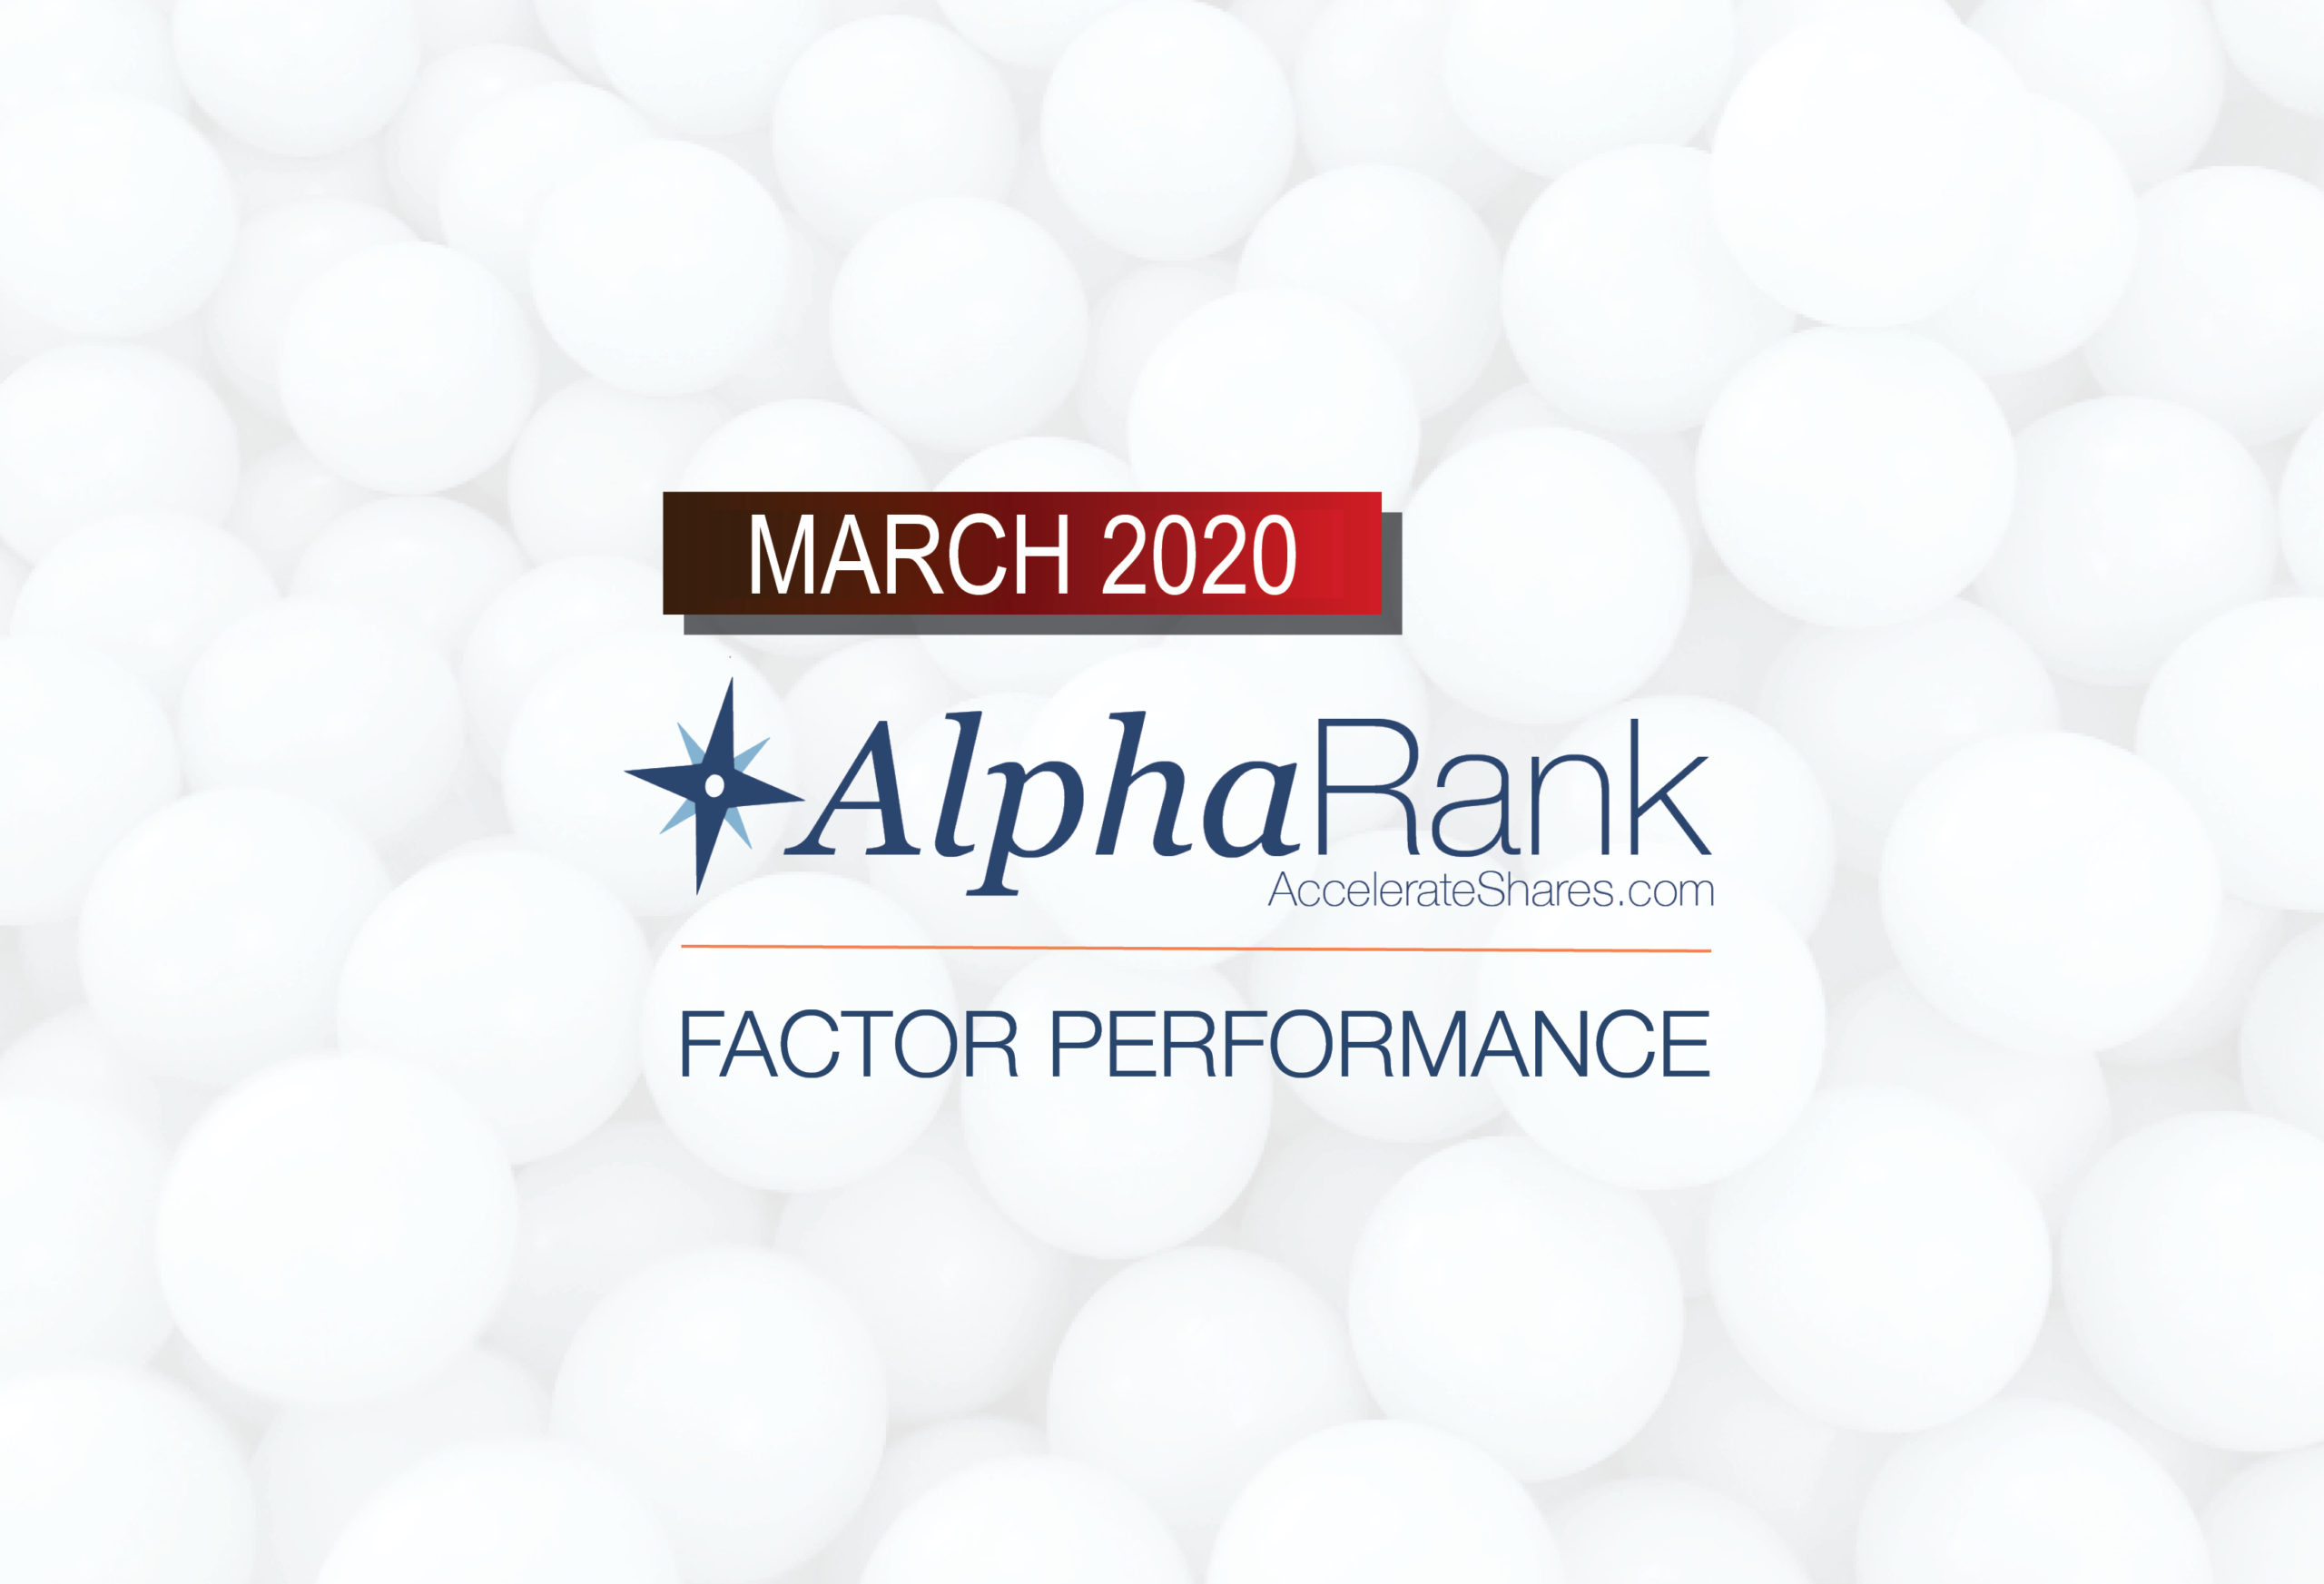 AlphaRank Factor Performance— March 2020